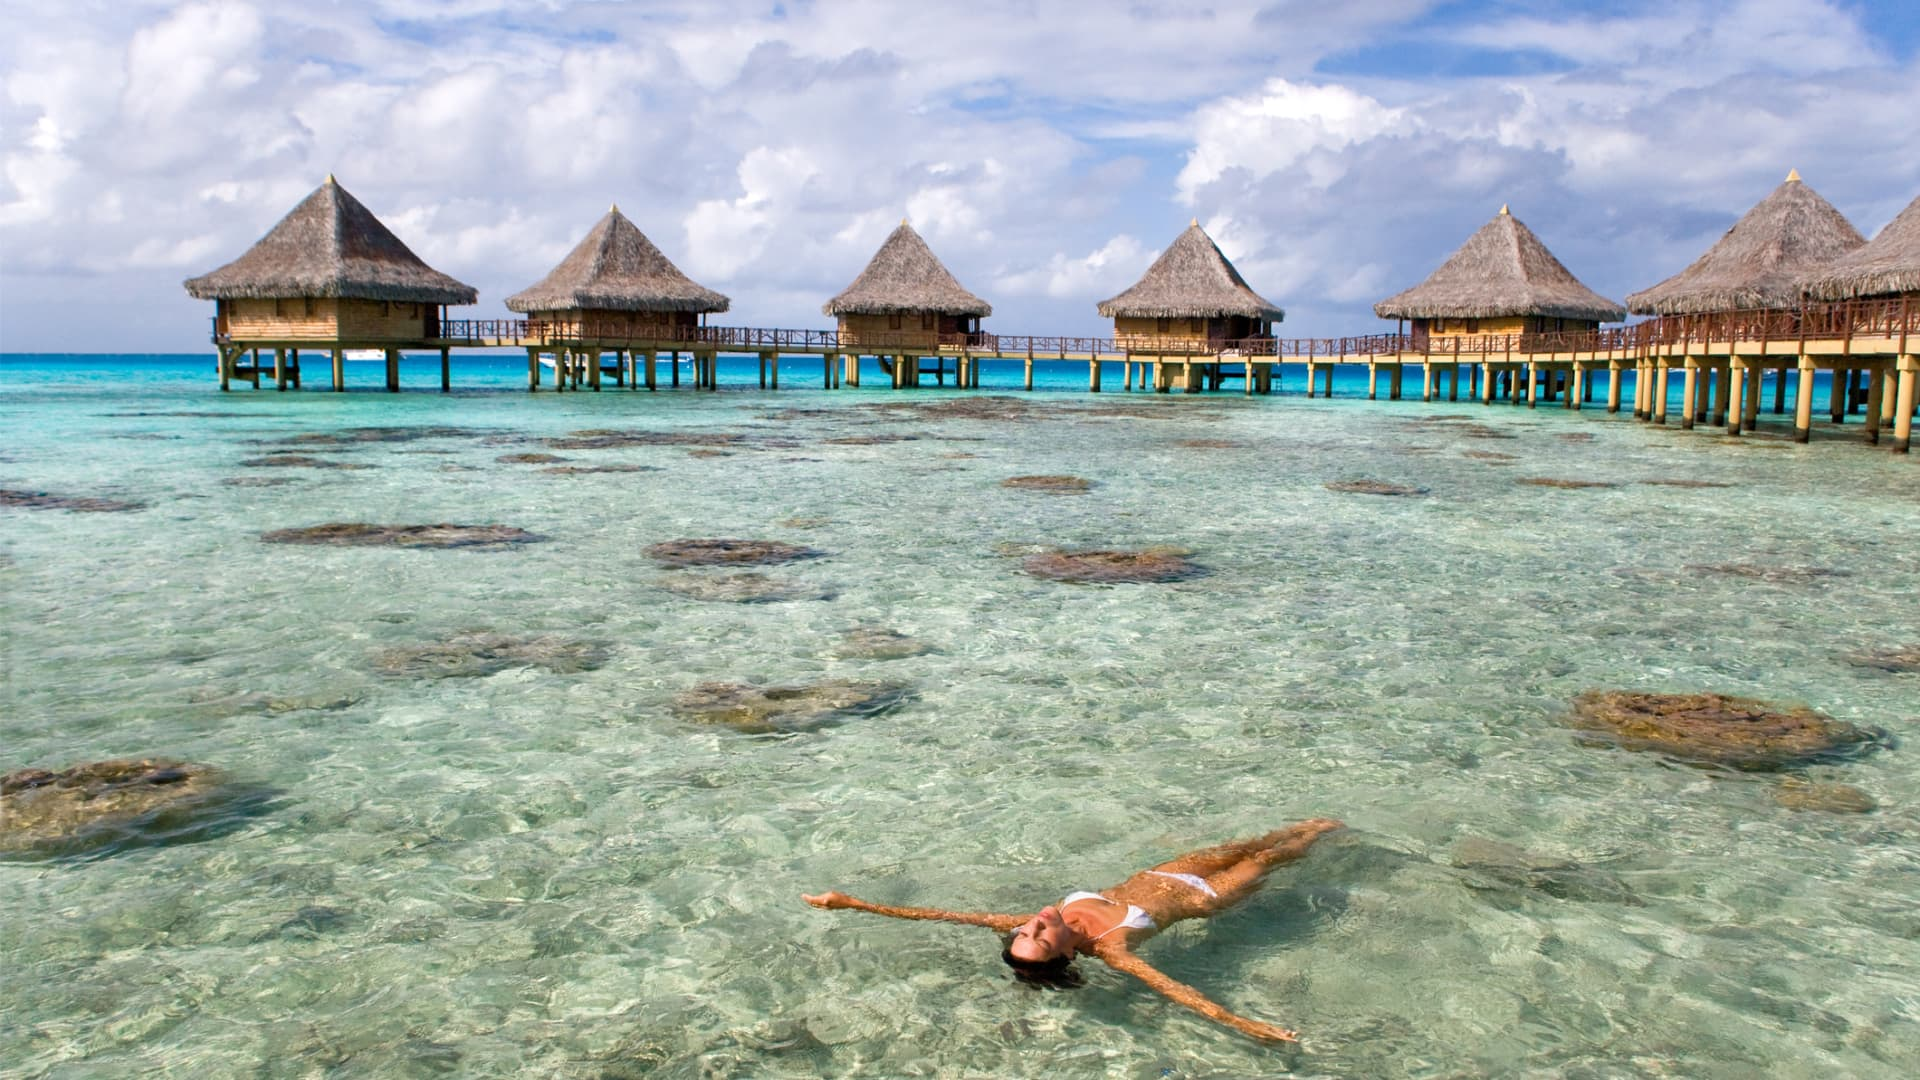 French Polynesia is home to the popular islands of Tahiti and Bora Bora.